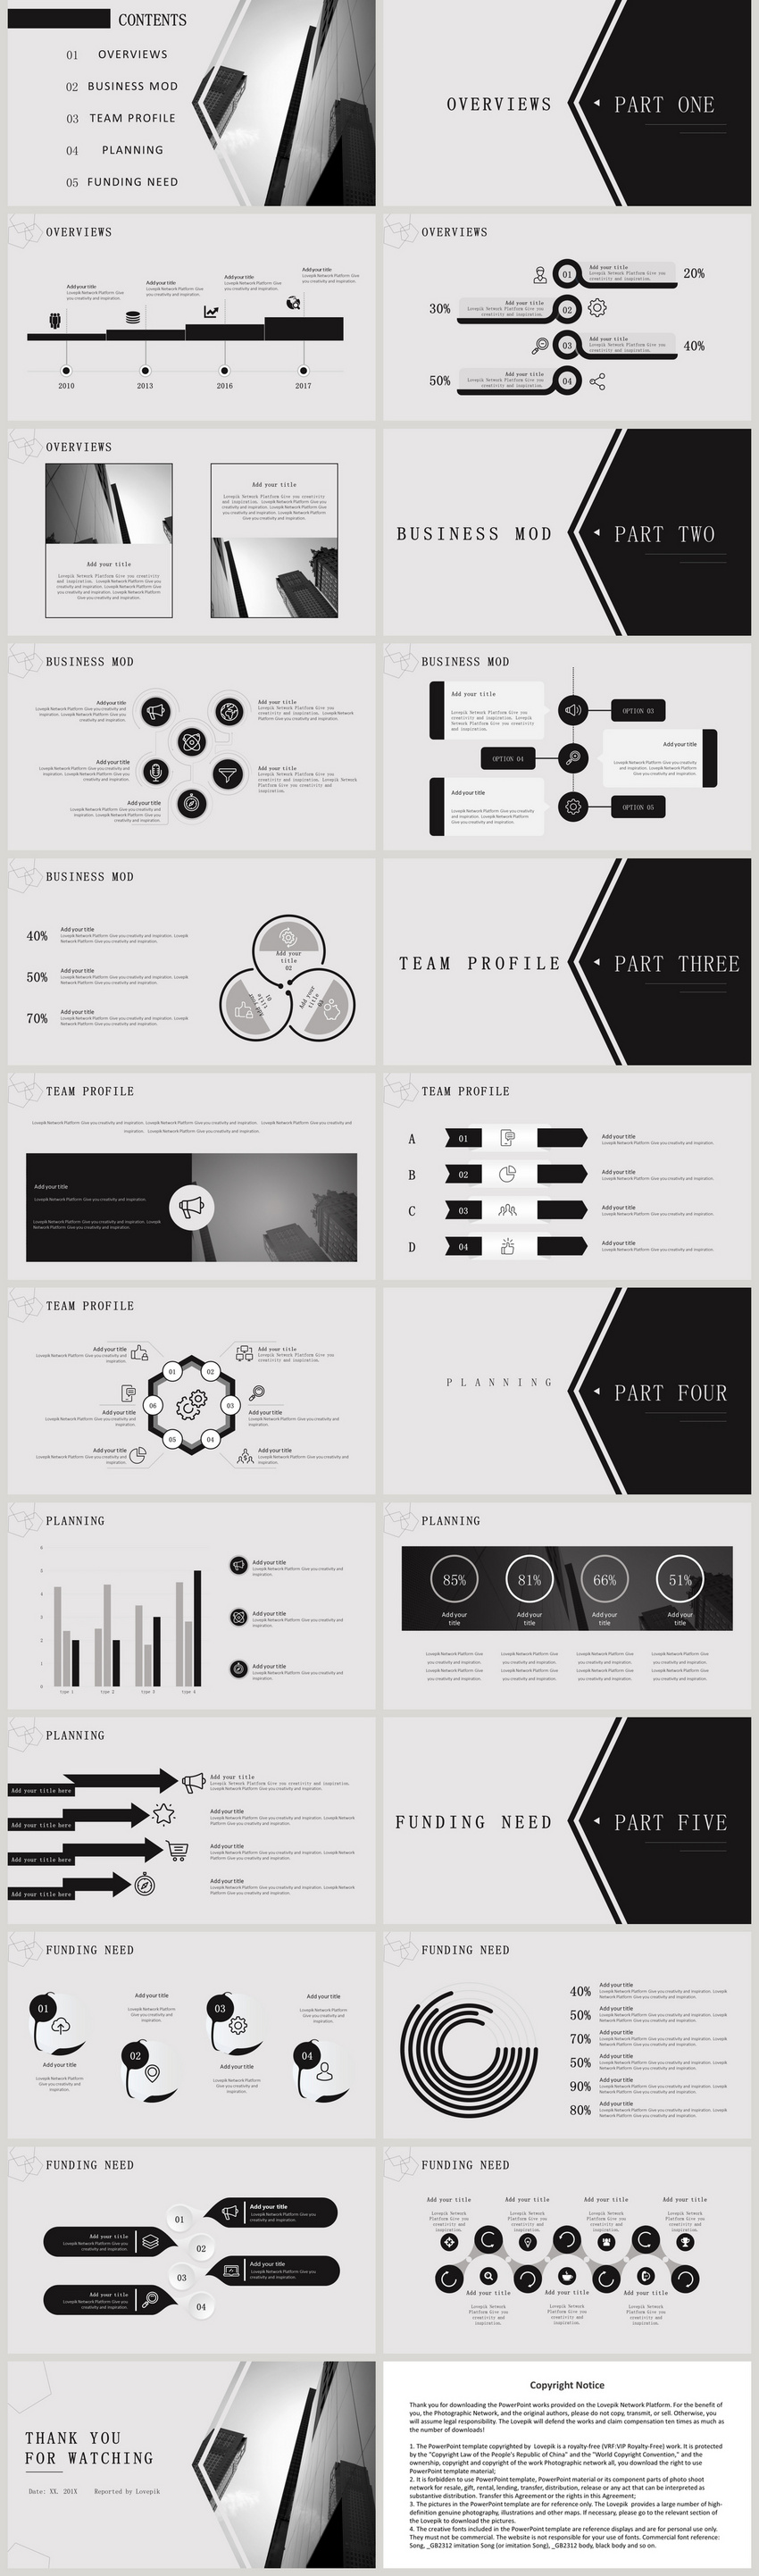 black ash minimalist formal business plan ppt template